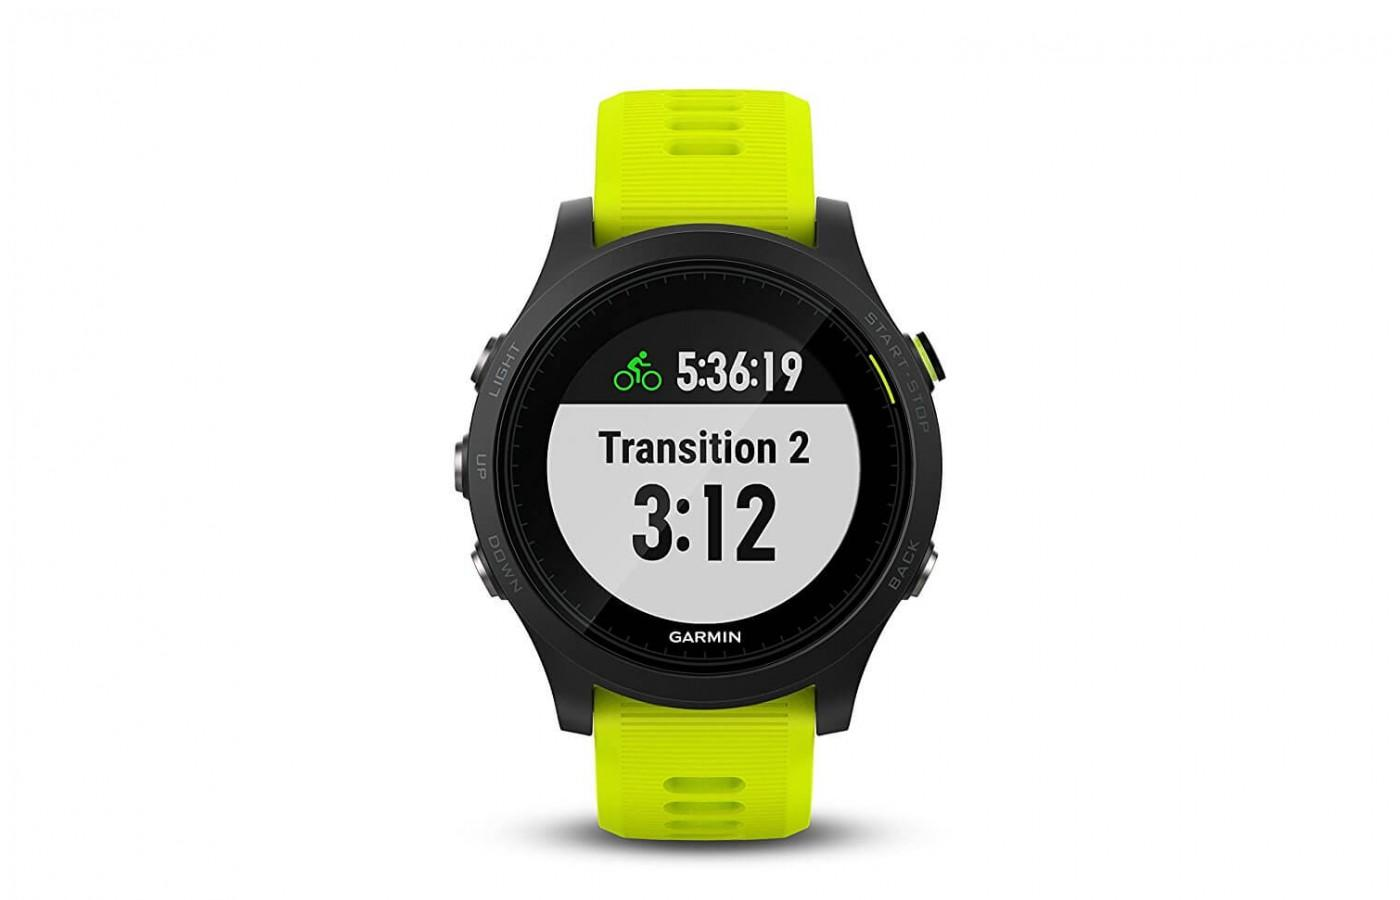 The Garmin Forerunner 935 offer impressive tracking for triathletes at each stage of their journey